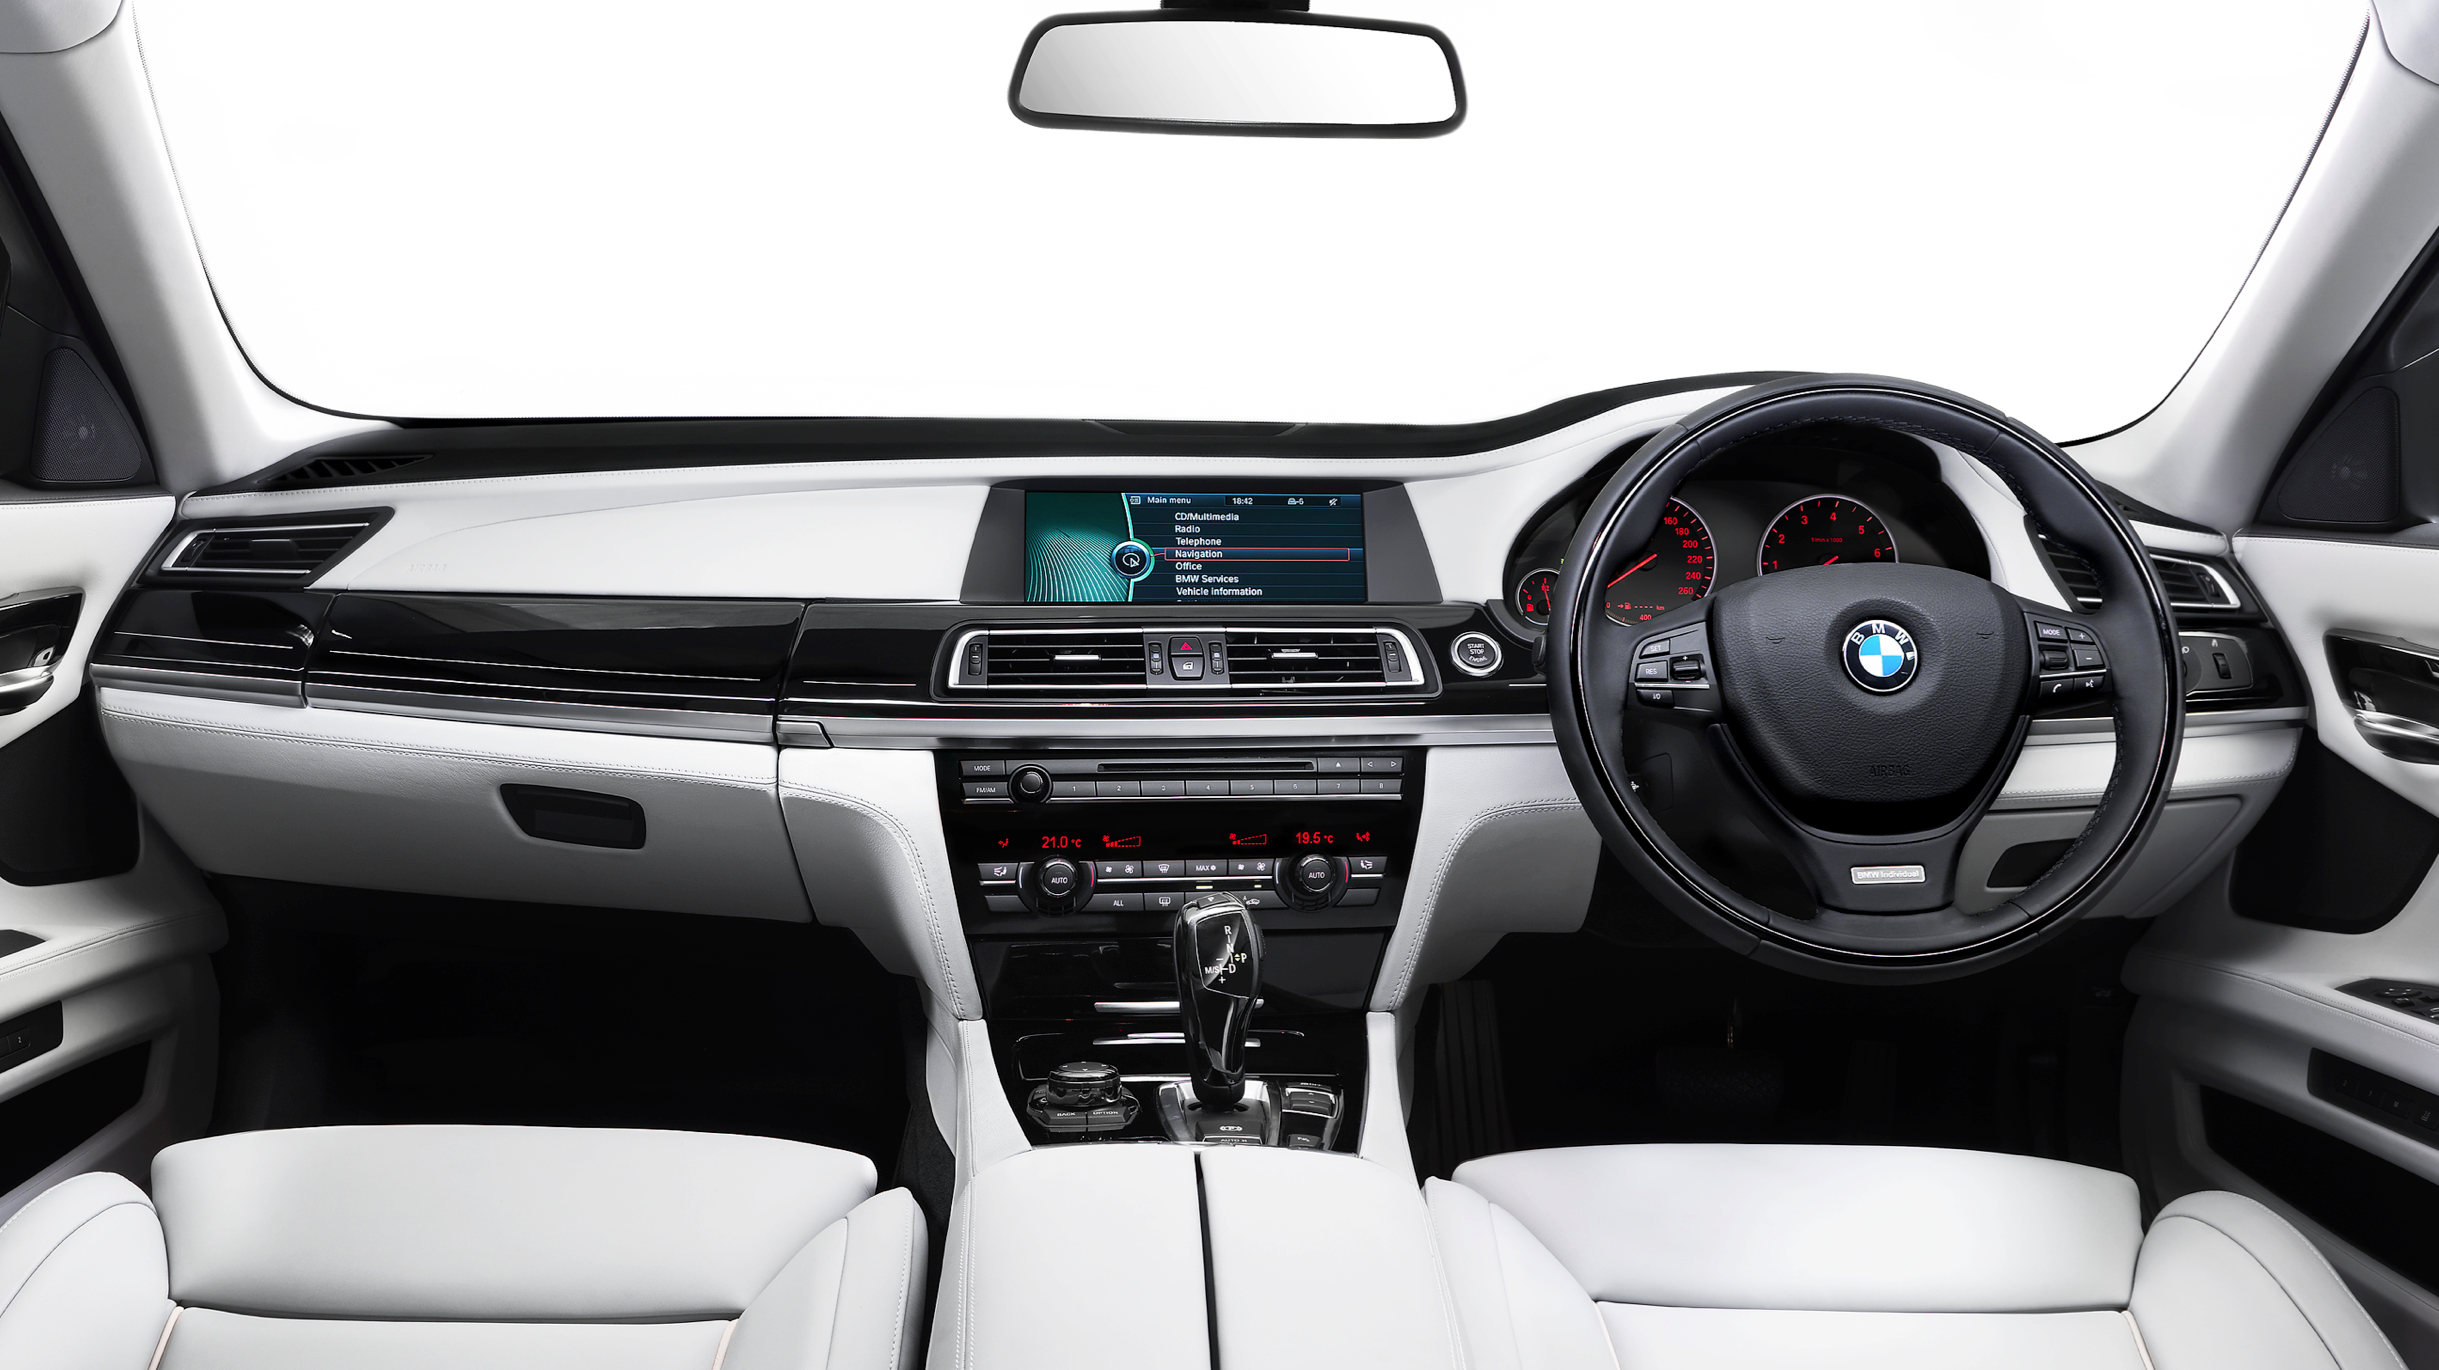 2013 bmw 320i interior male models picture - Bmw 7 Series Individual Didit In1 13 Png